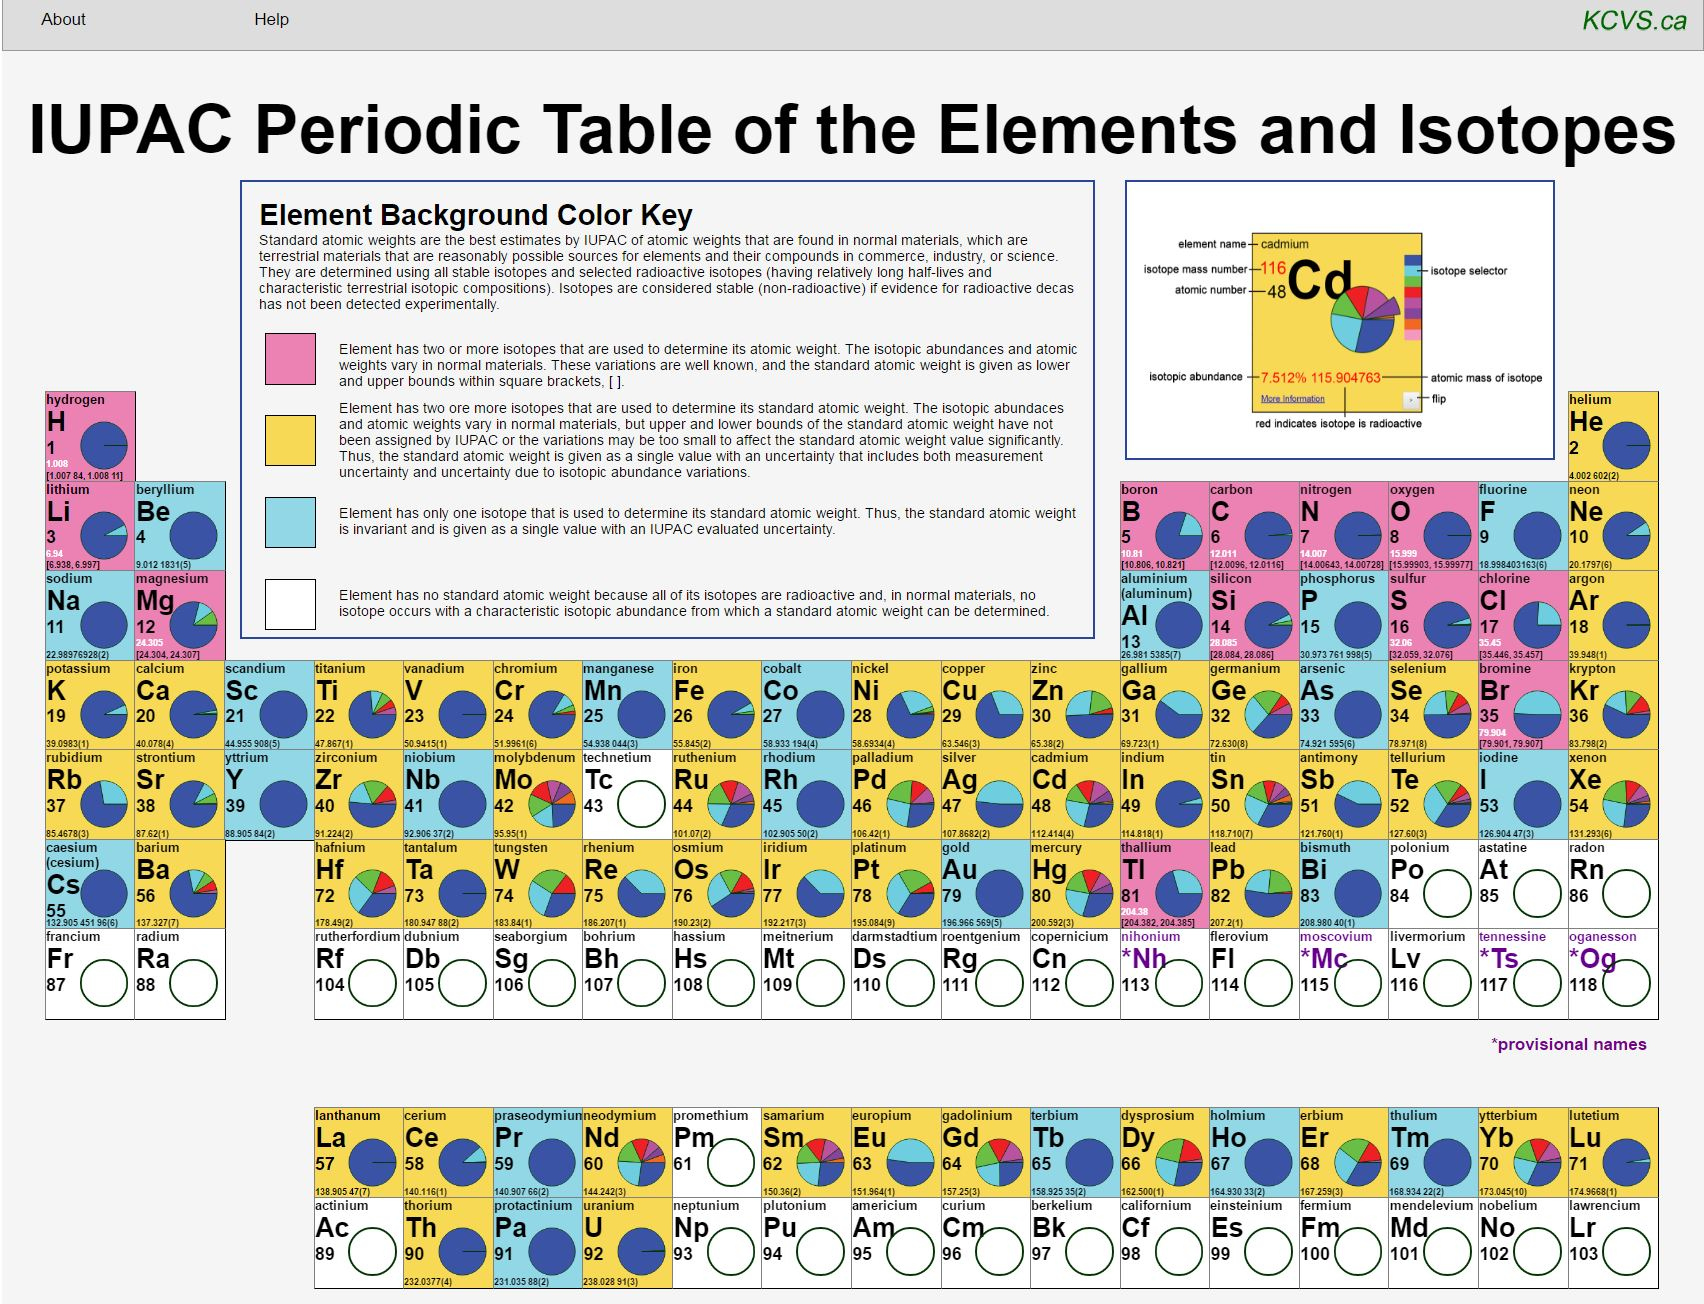 Kcvs Plays Major Role In Global Launch Of New Iupac